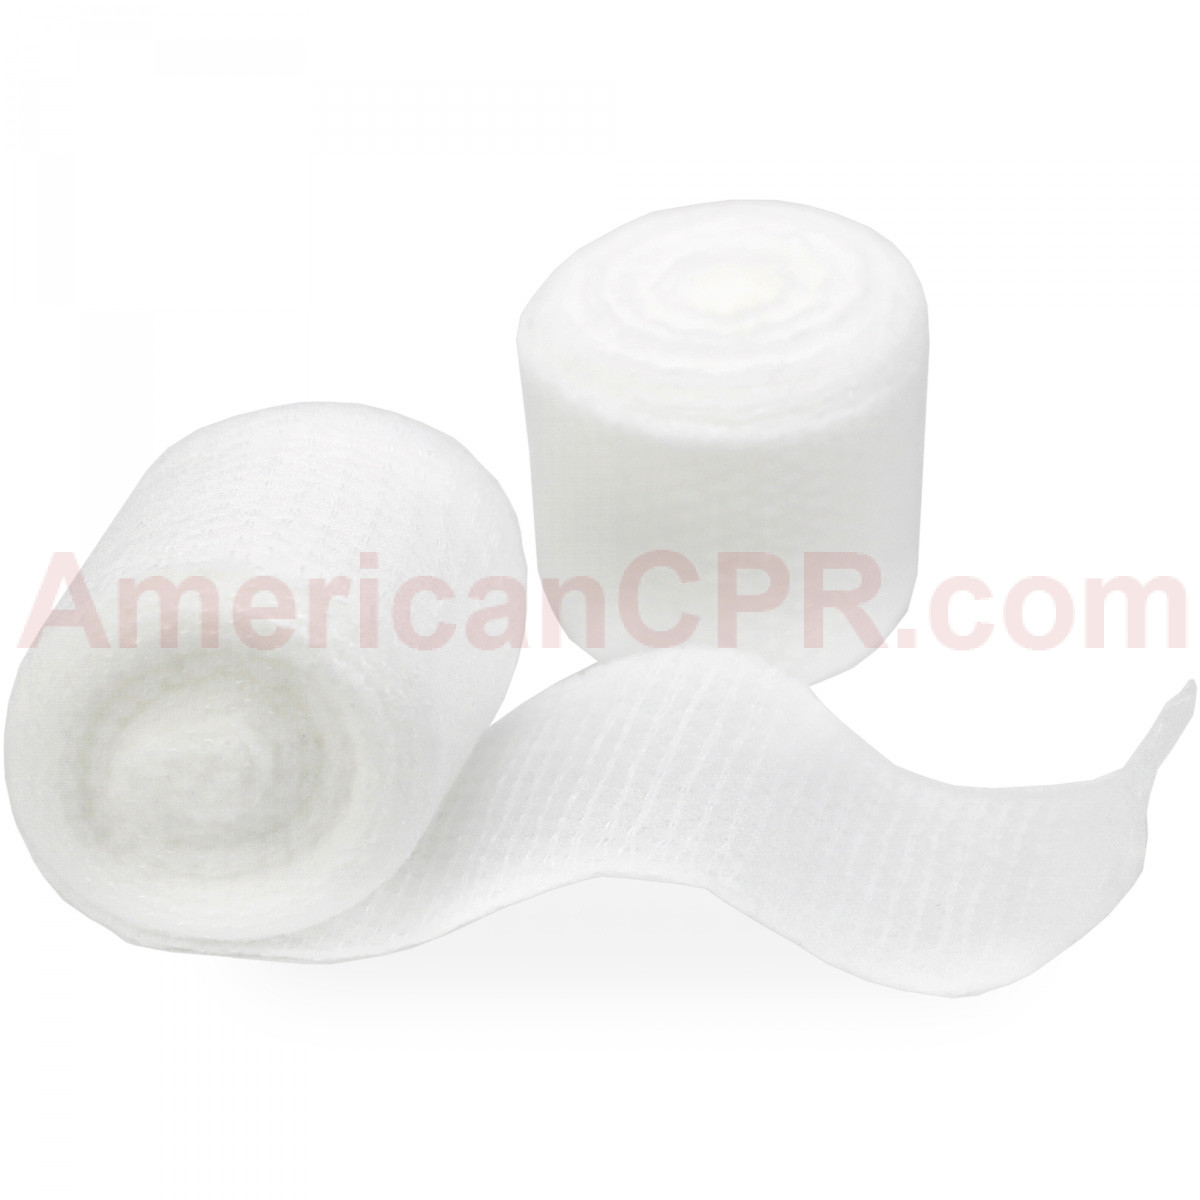 This conforming stretch bandage should be used for moderate compression